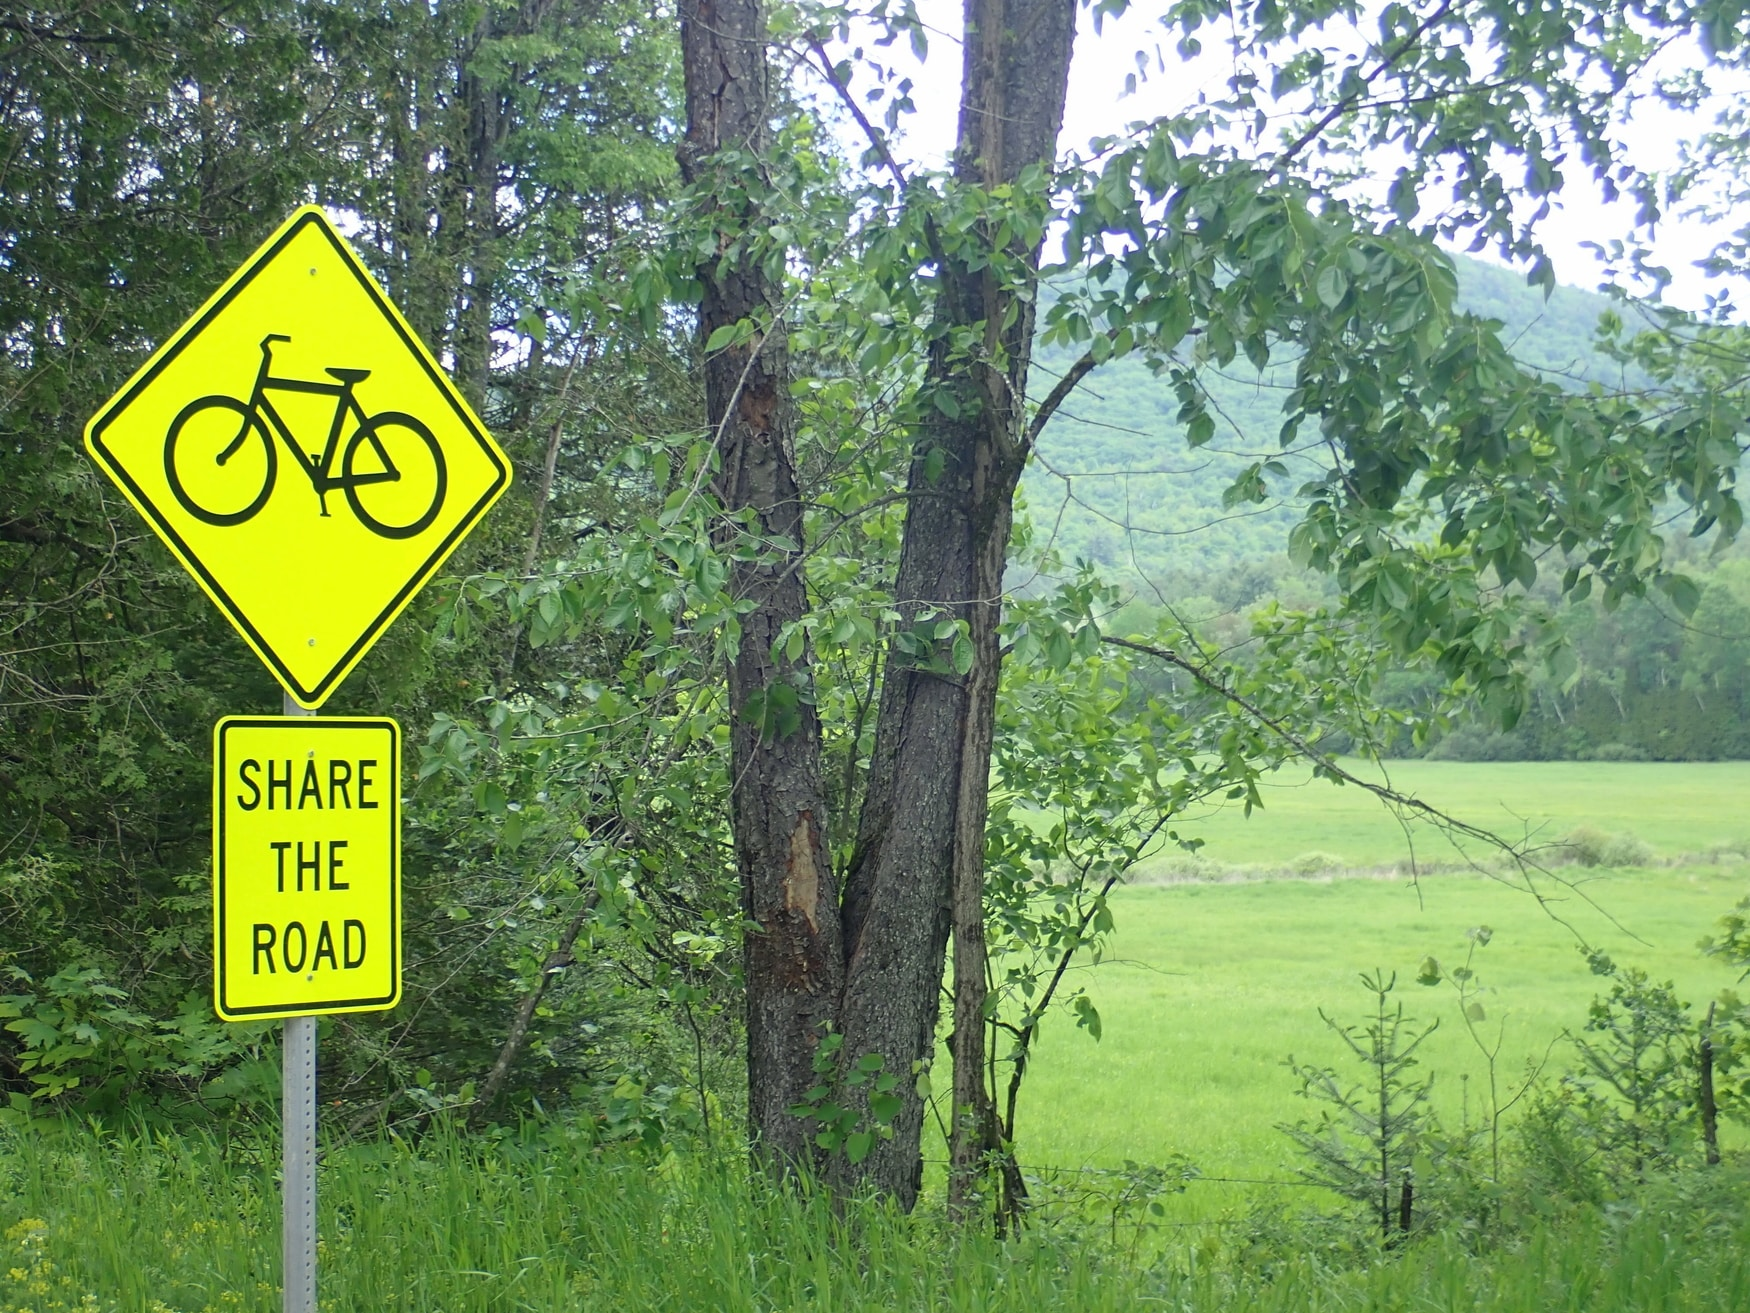 Share the road sign at Beaver Pond intersection